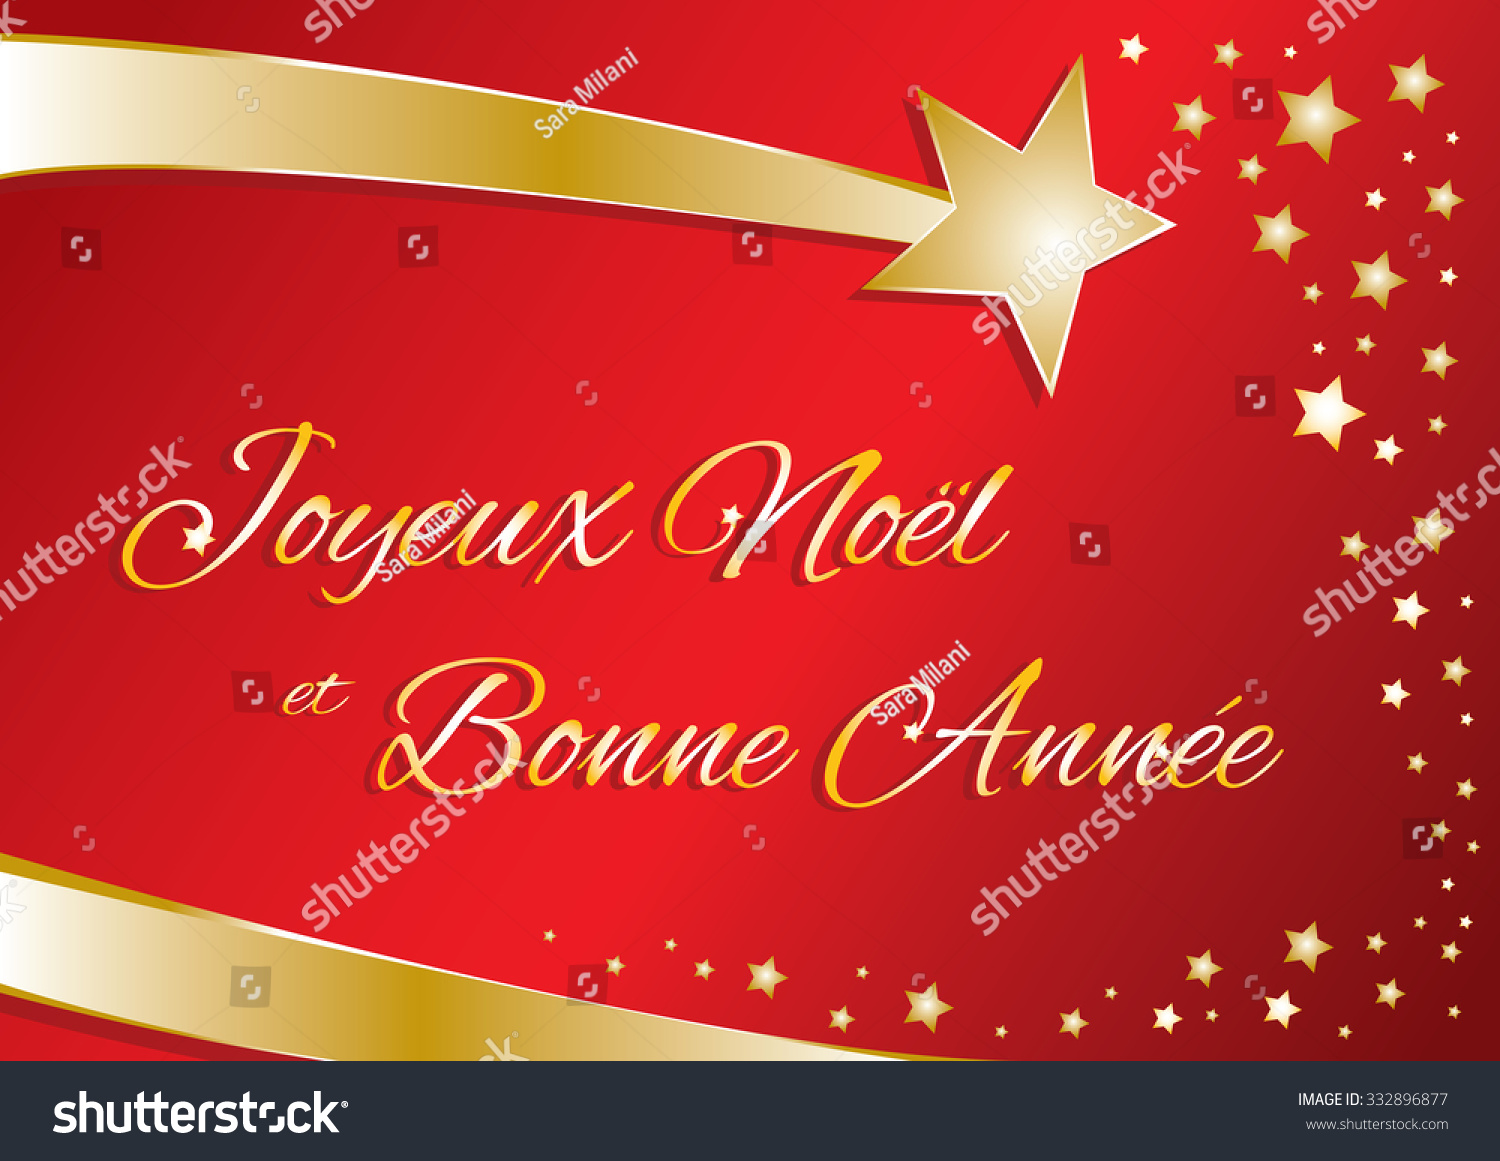 vector greeting card merry christmas and happy new year in french red and gold with calligraphic